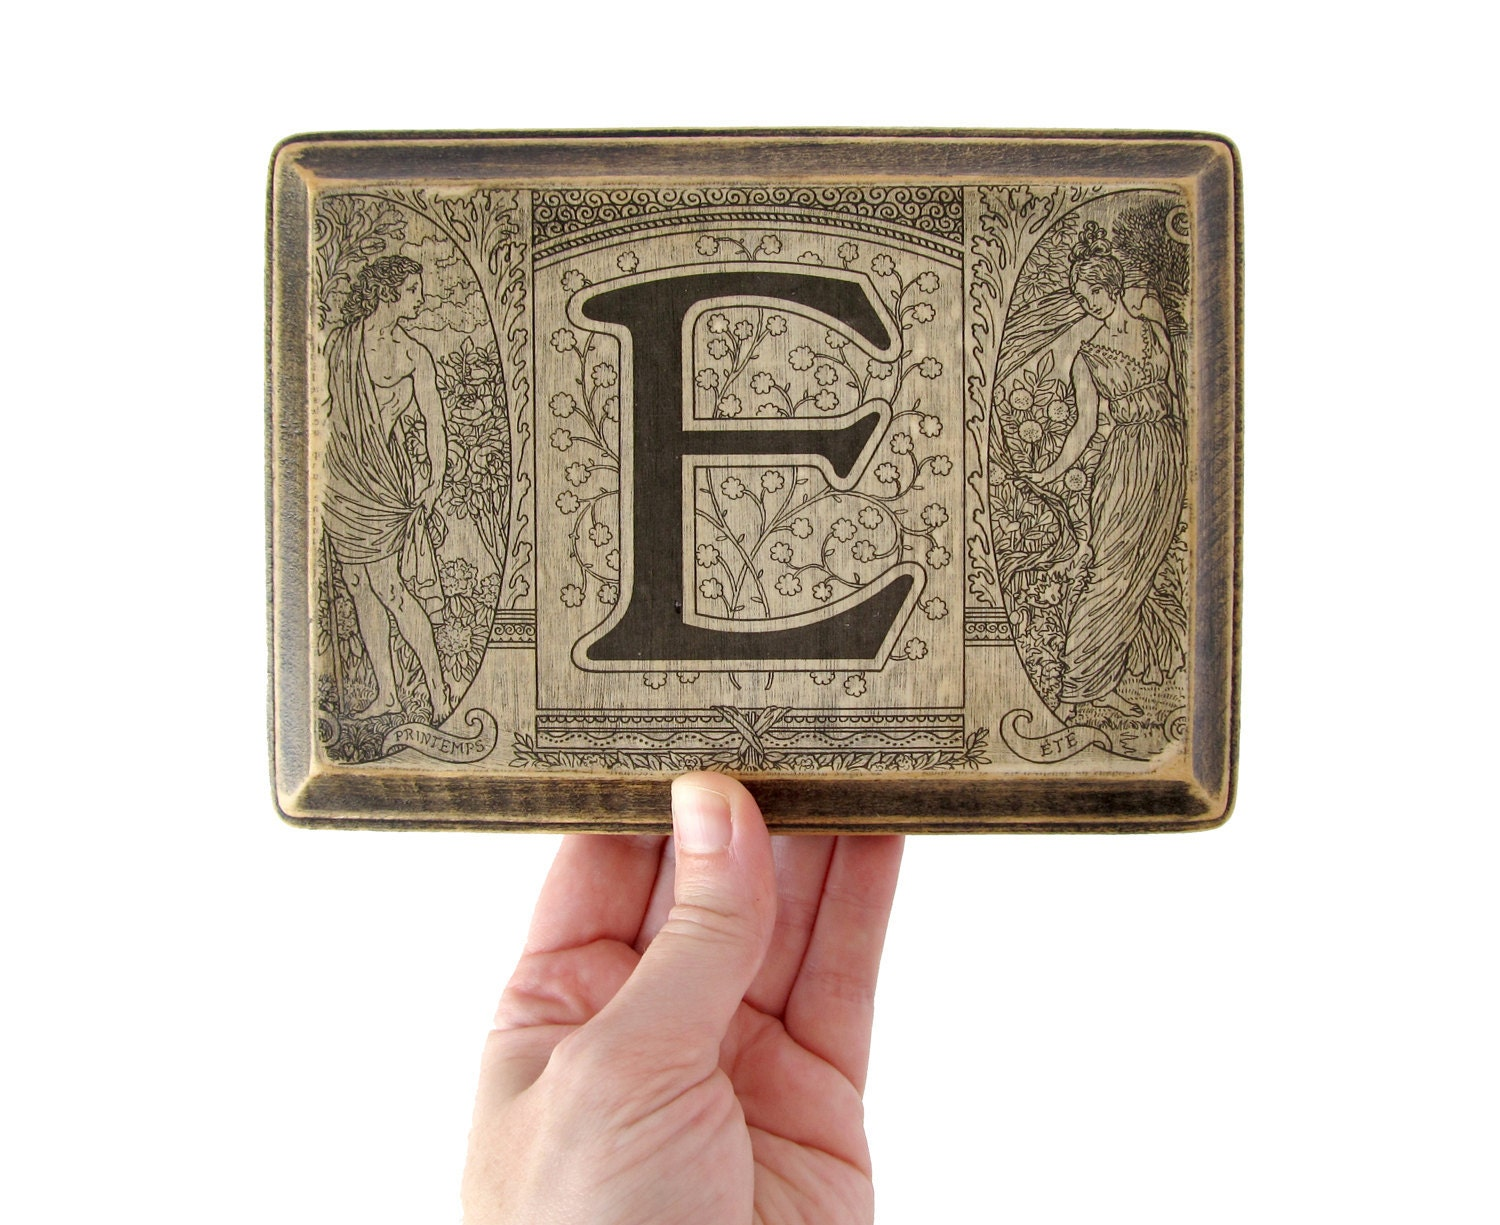 The letter e monogram plaque 1922 french dictionary by for Letter plaques